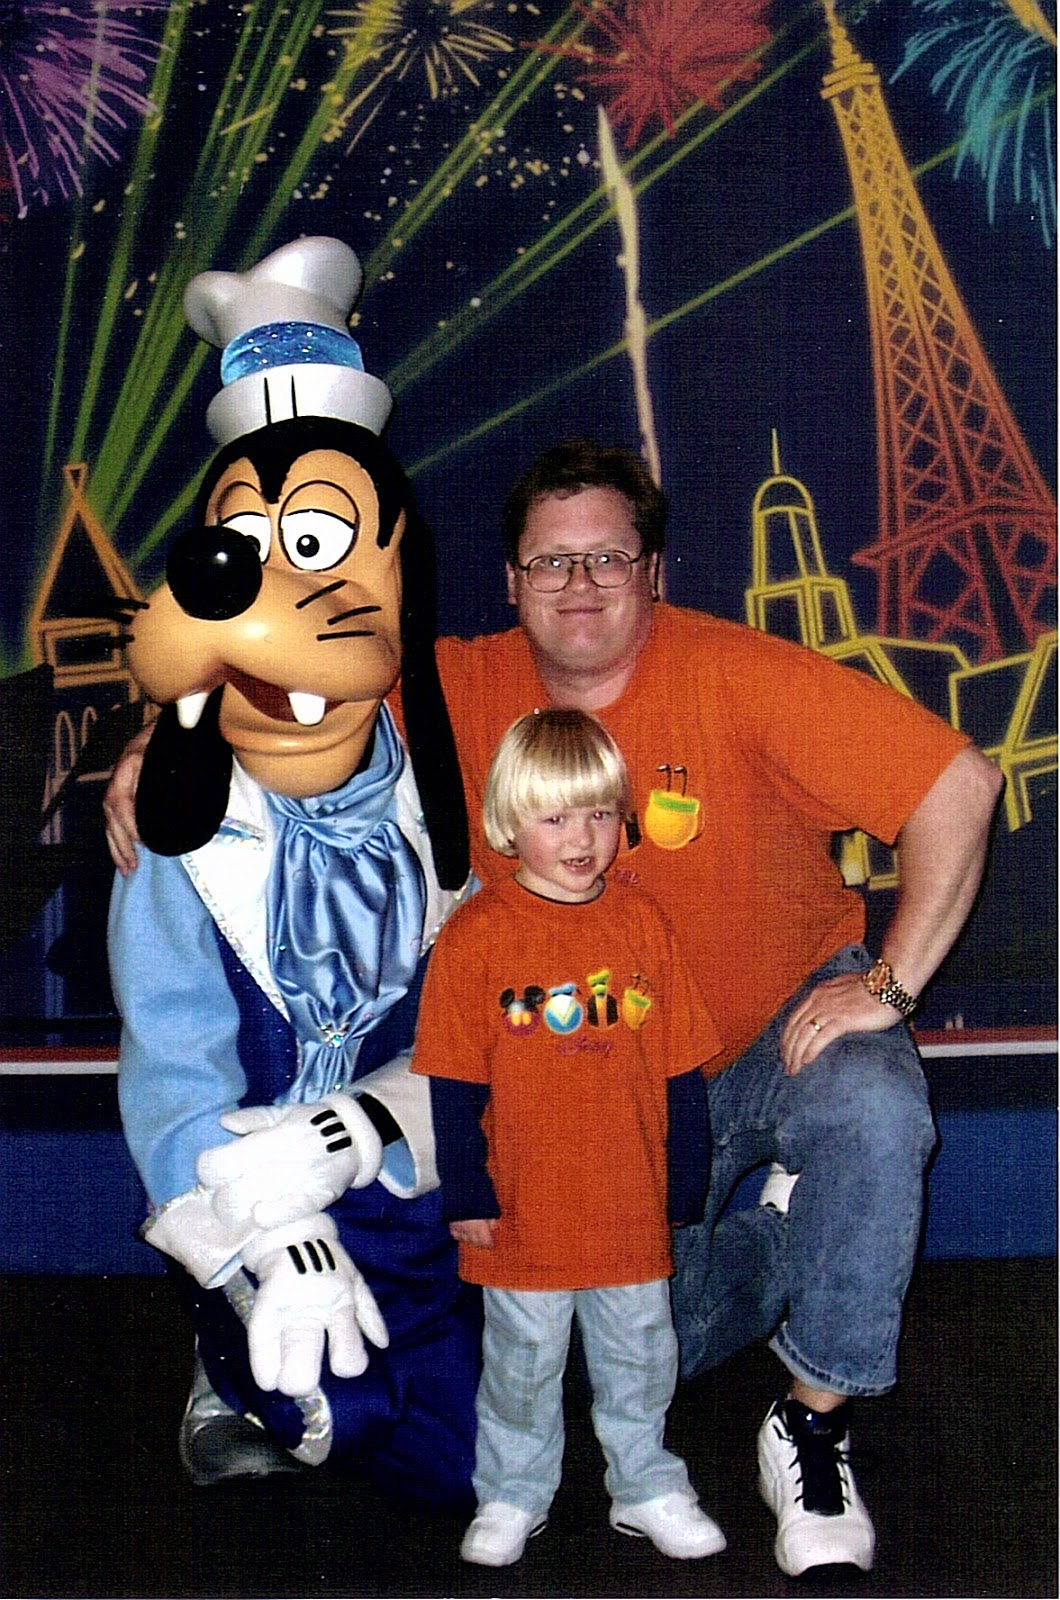 668b57e27 Let's turn back time to 2006 to our first trip to Walt Disney World. I  recall us taking a 5 night trip, stayed at Disney's Caribbean Beach Resort  with a ...